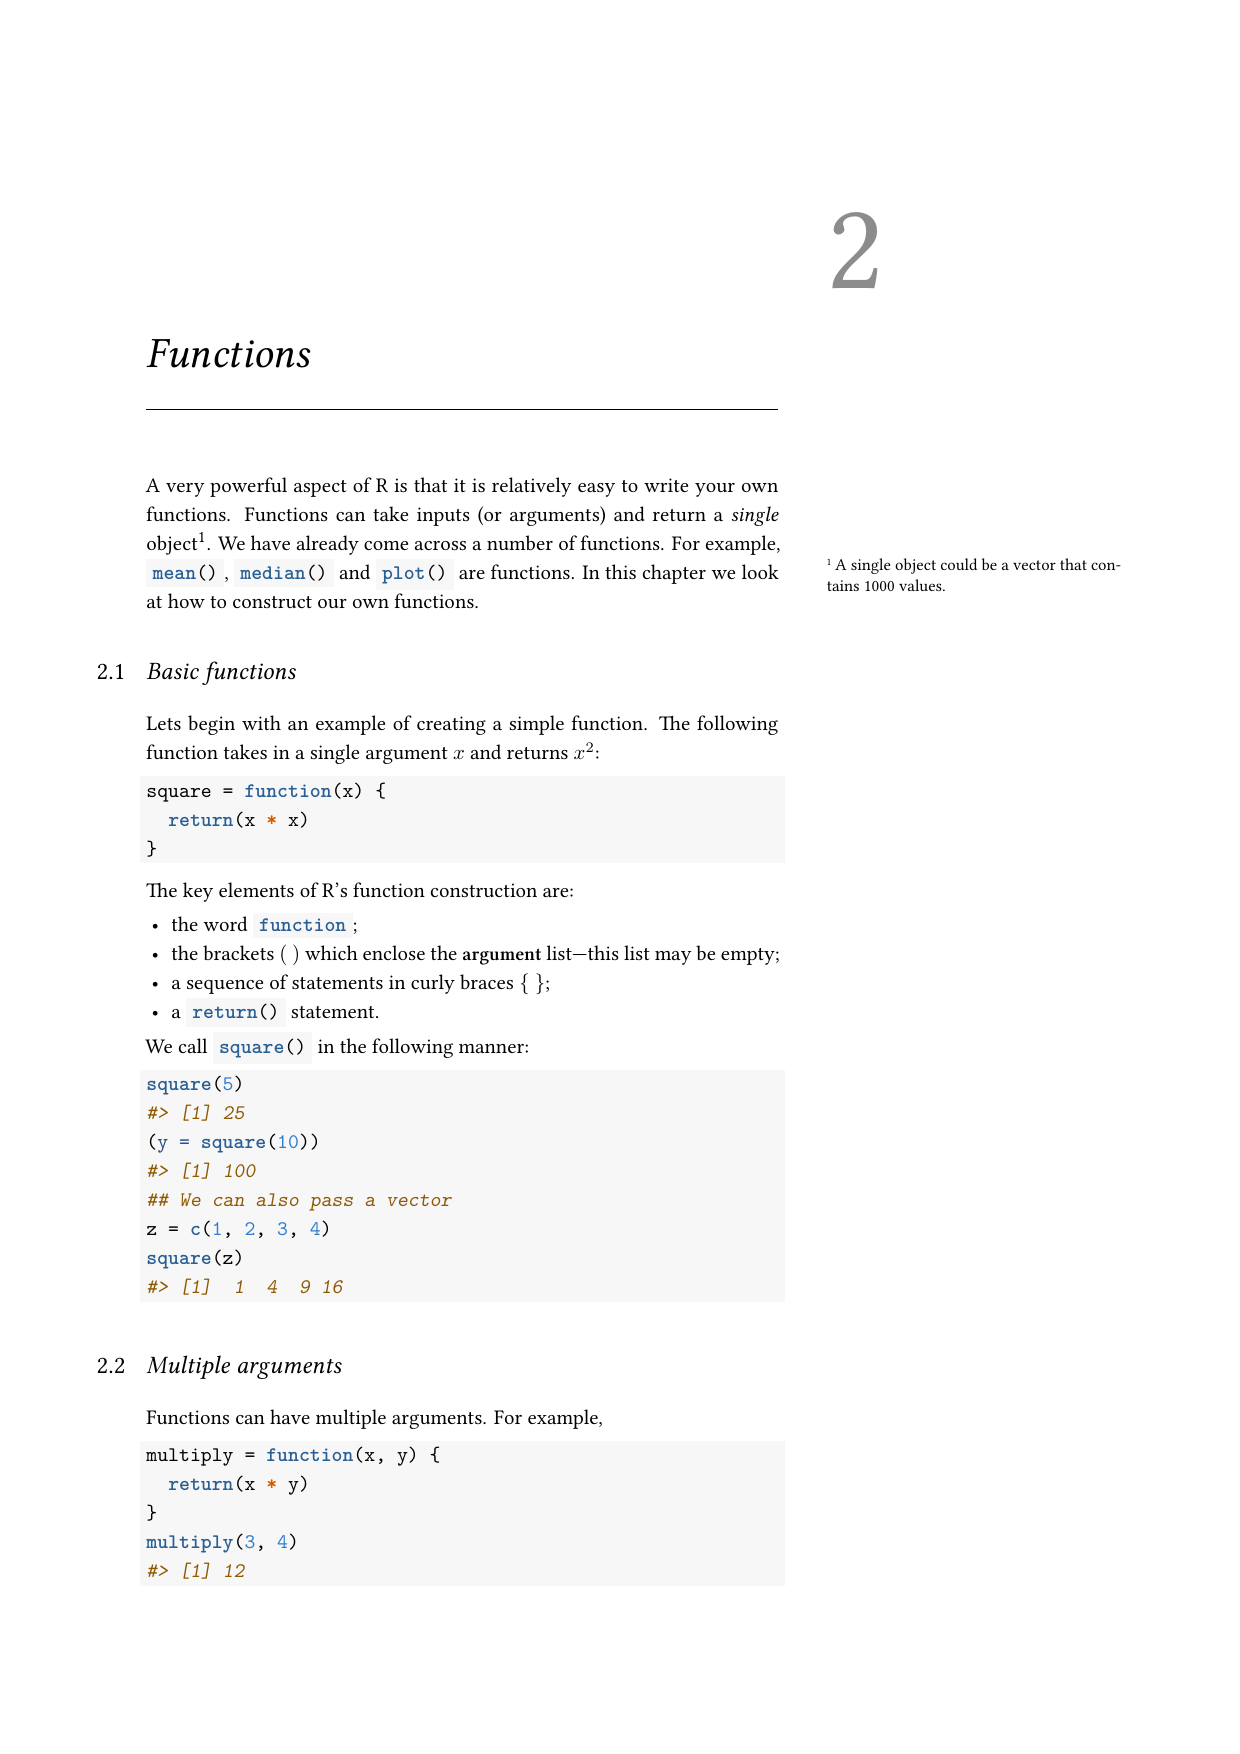 Example course material for 'Programming with R